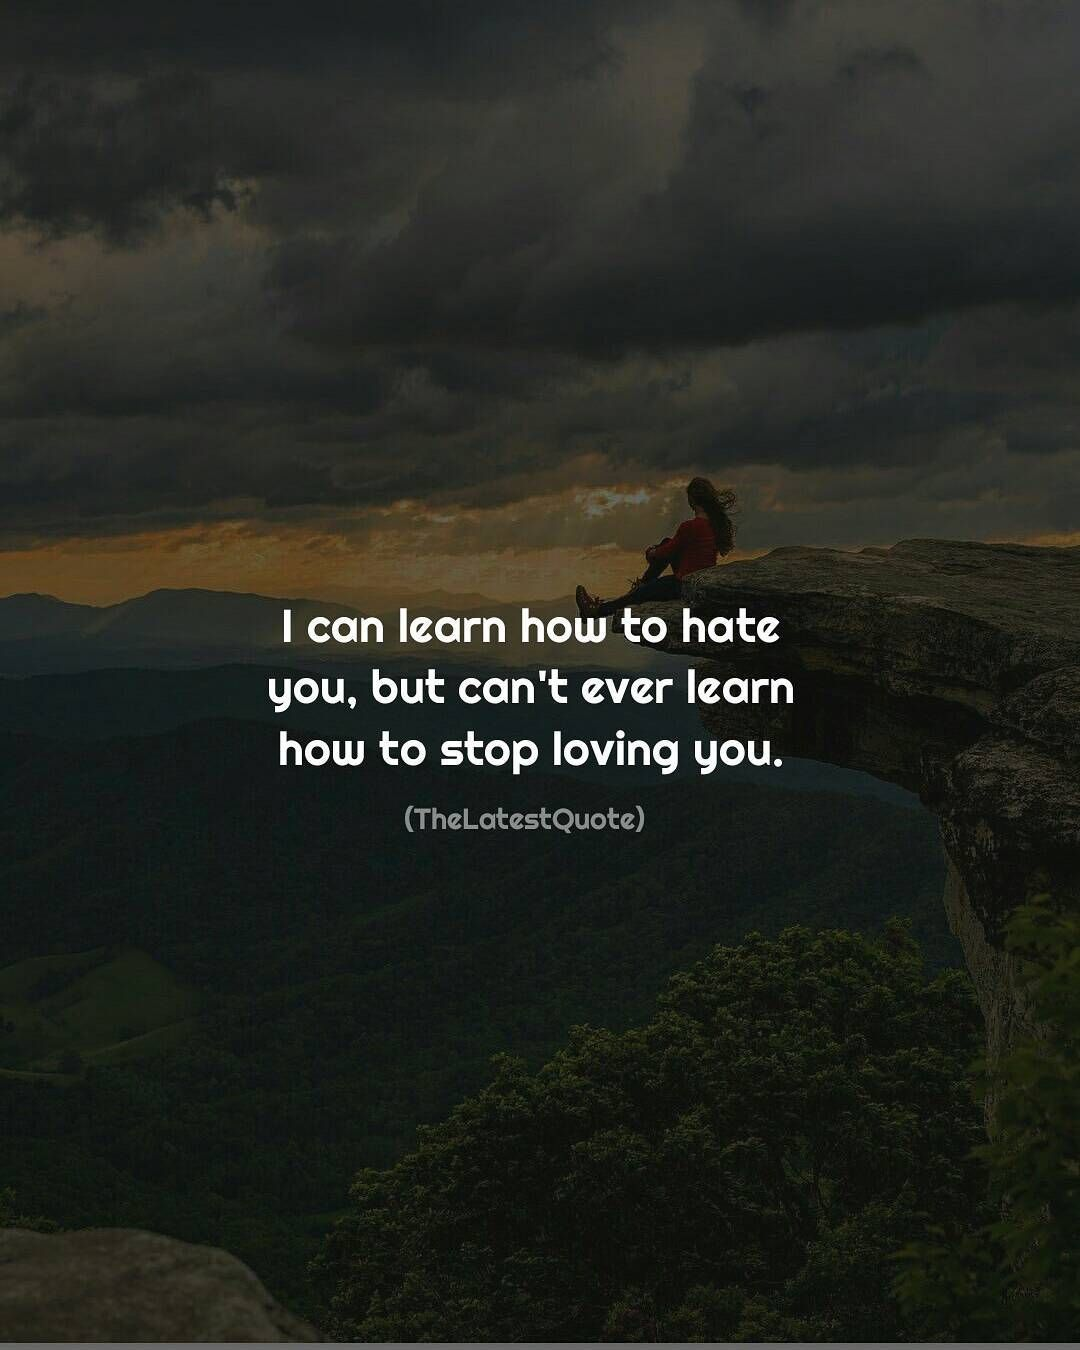 Lovingyou Quotes I Can Learn How To Hate You But I Can't Ever Learn How To Stop .